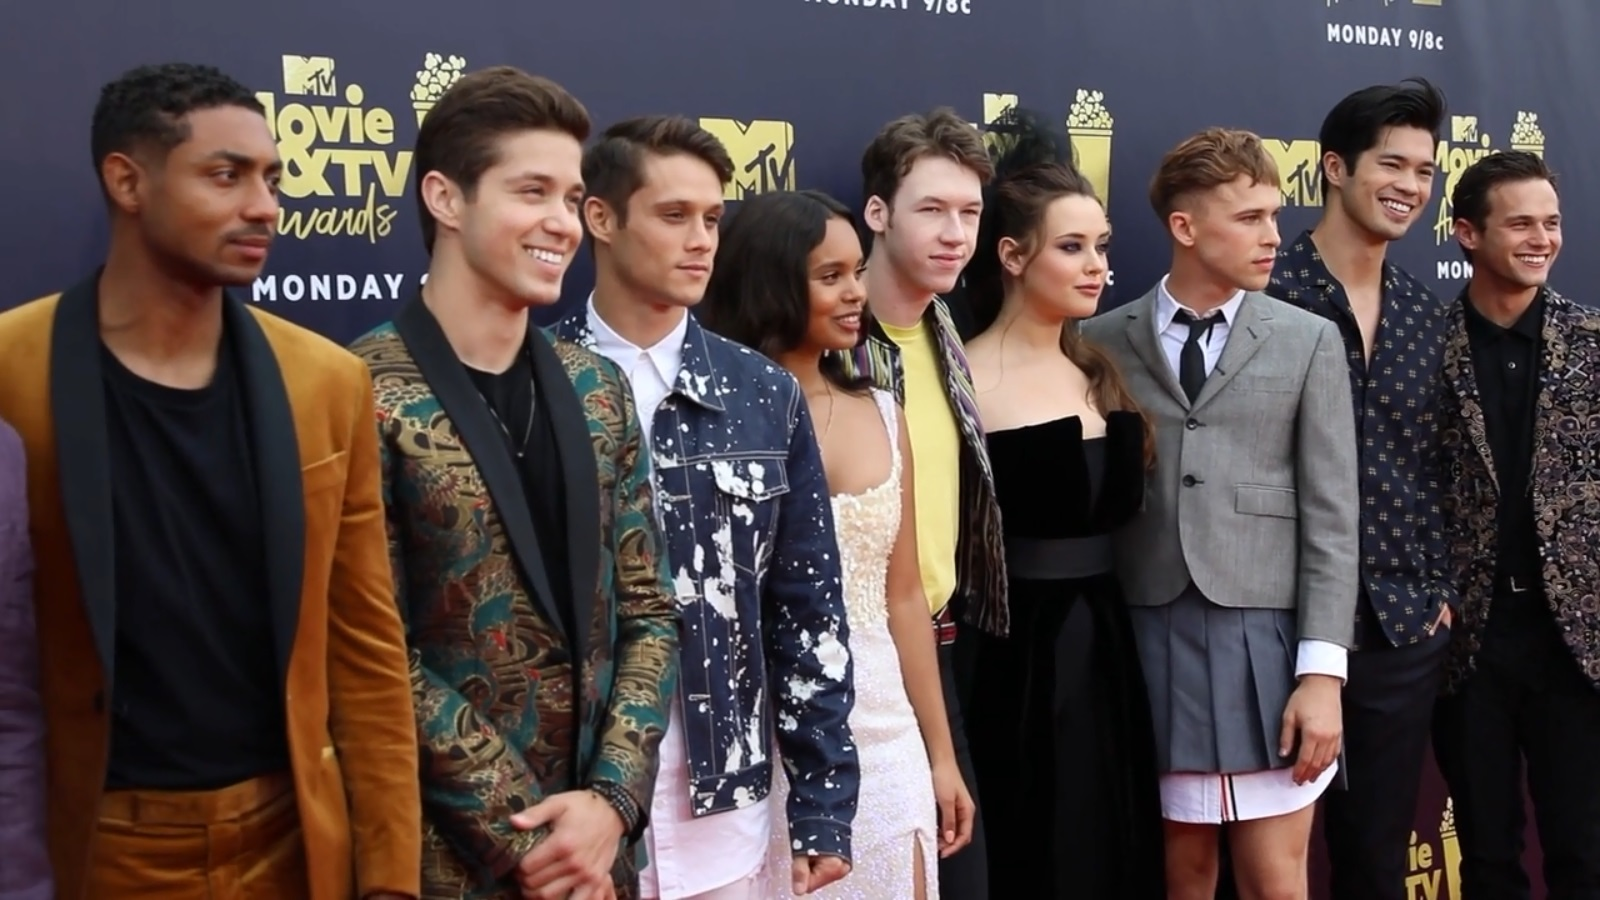 13 Reason Why cast at MTV Awards.jpg